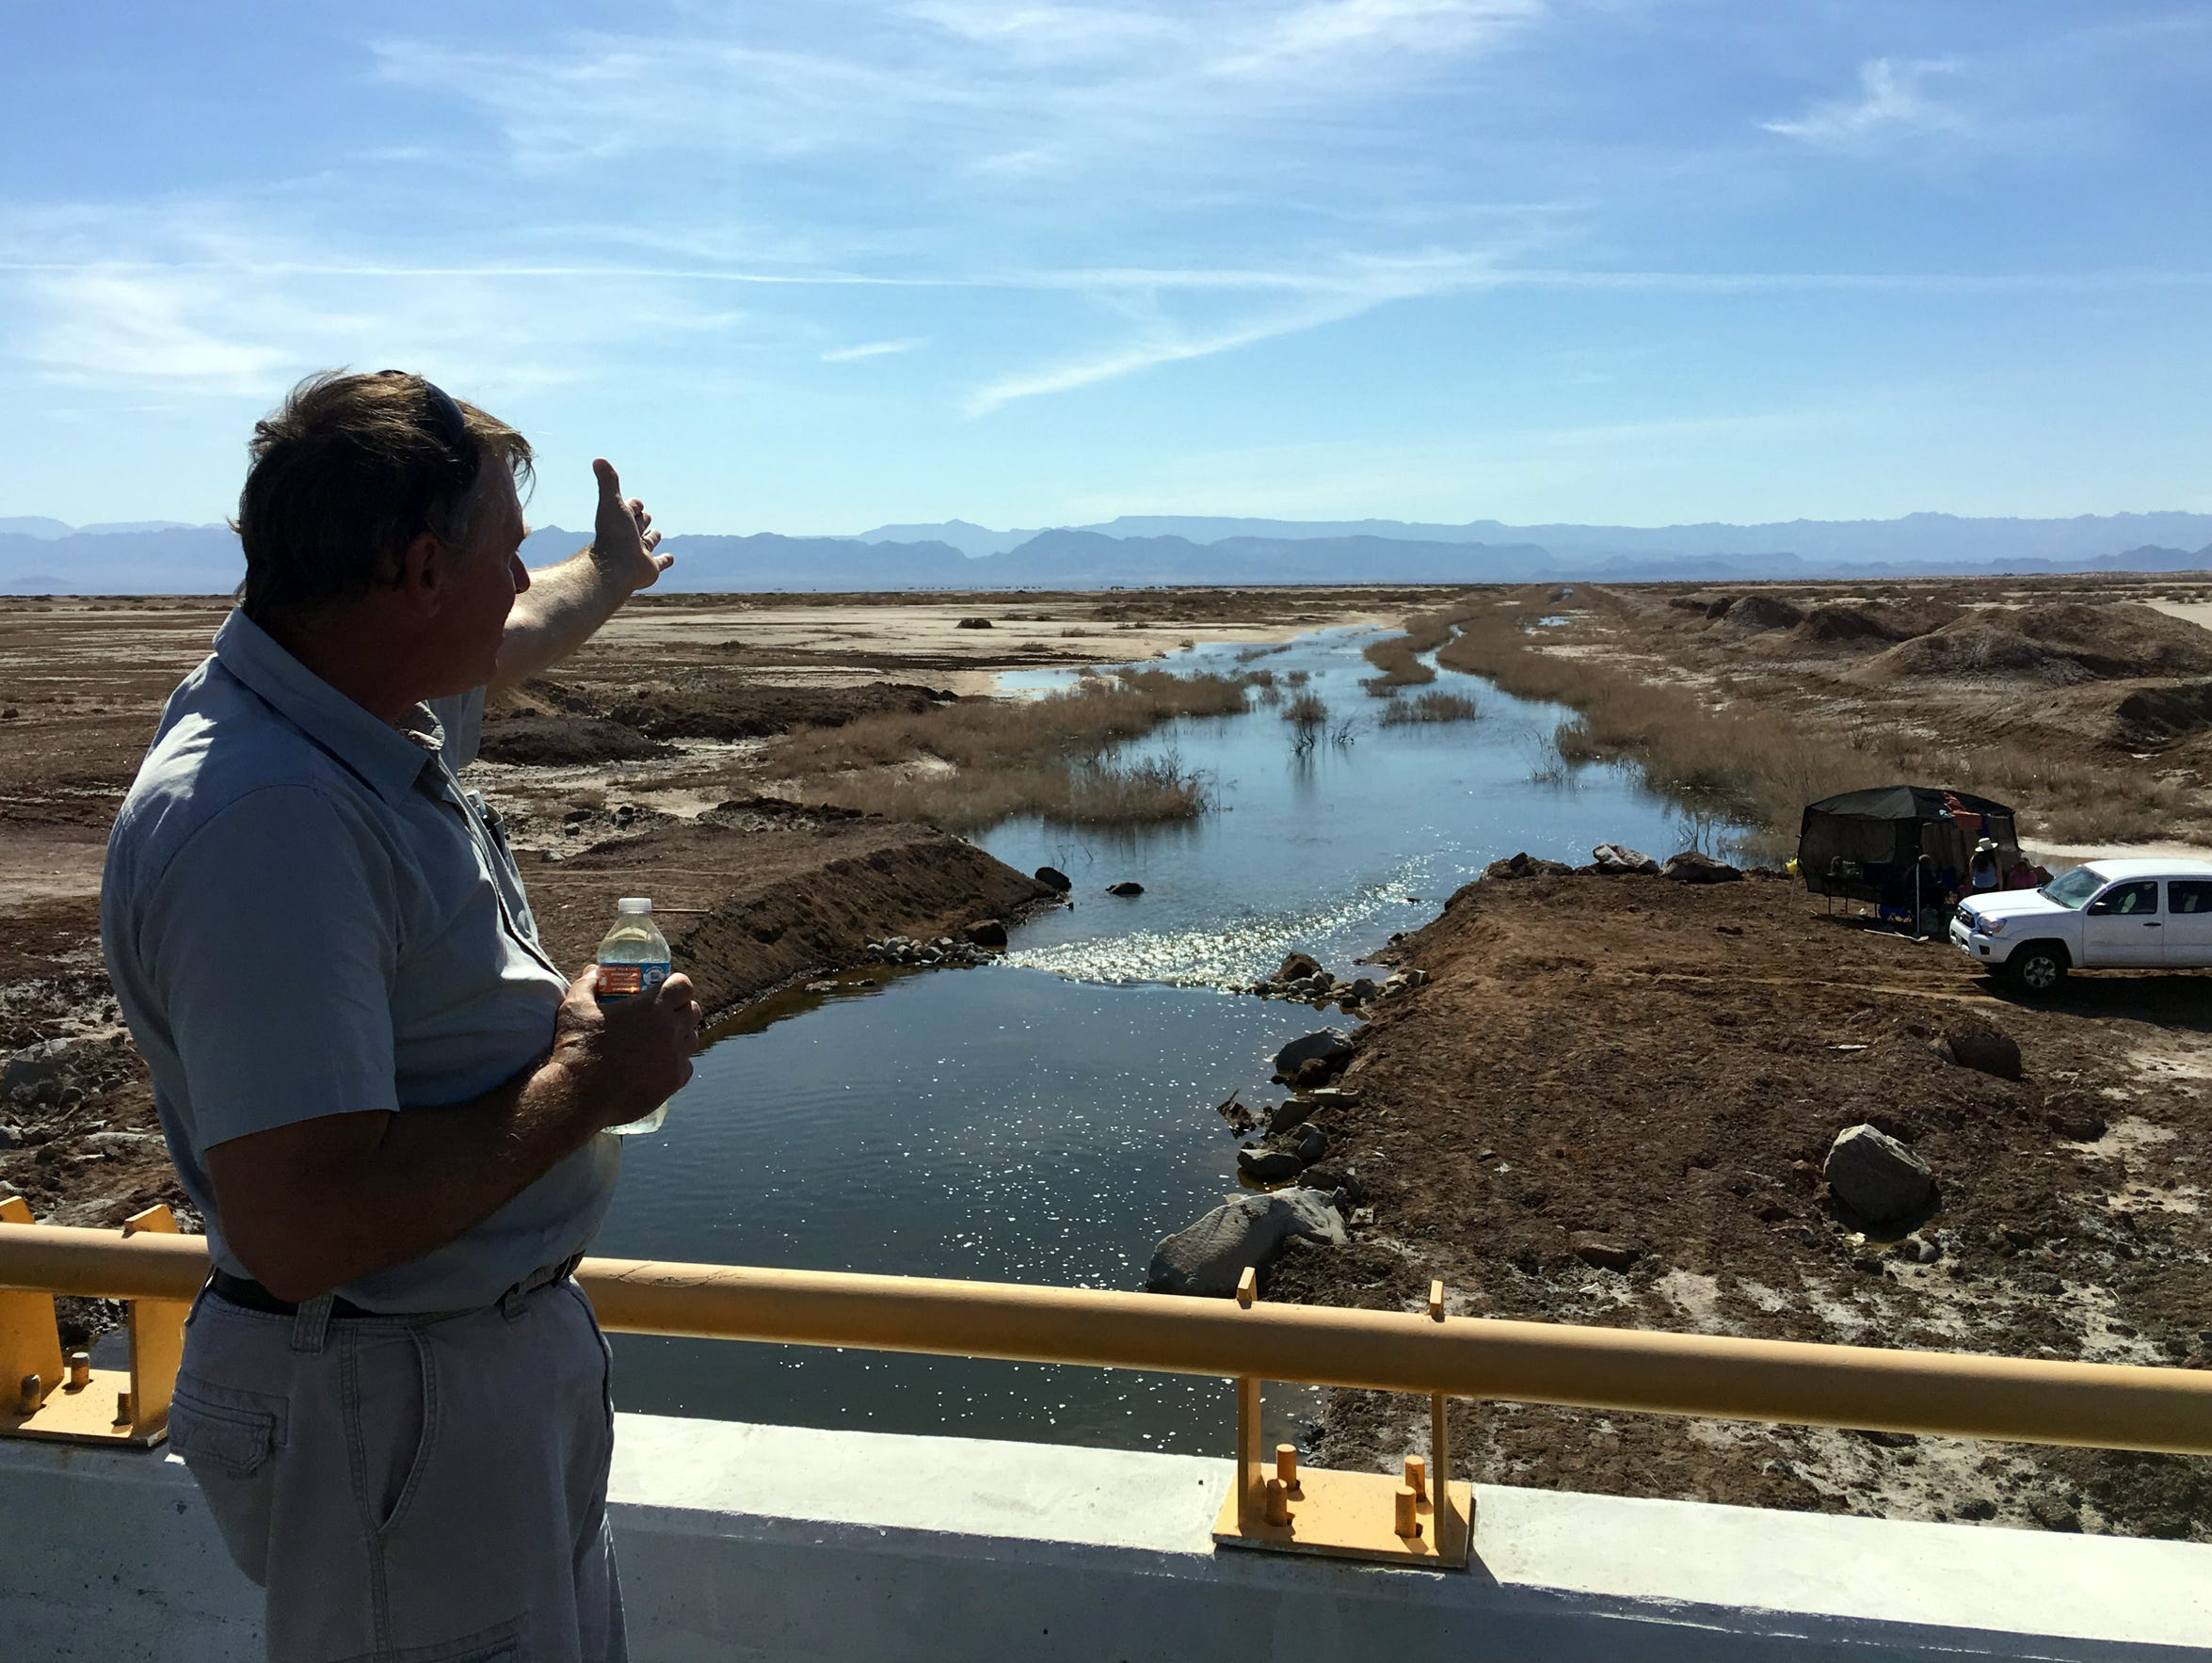 Tom Sephton, who runs a desalination plant in the Salton